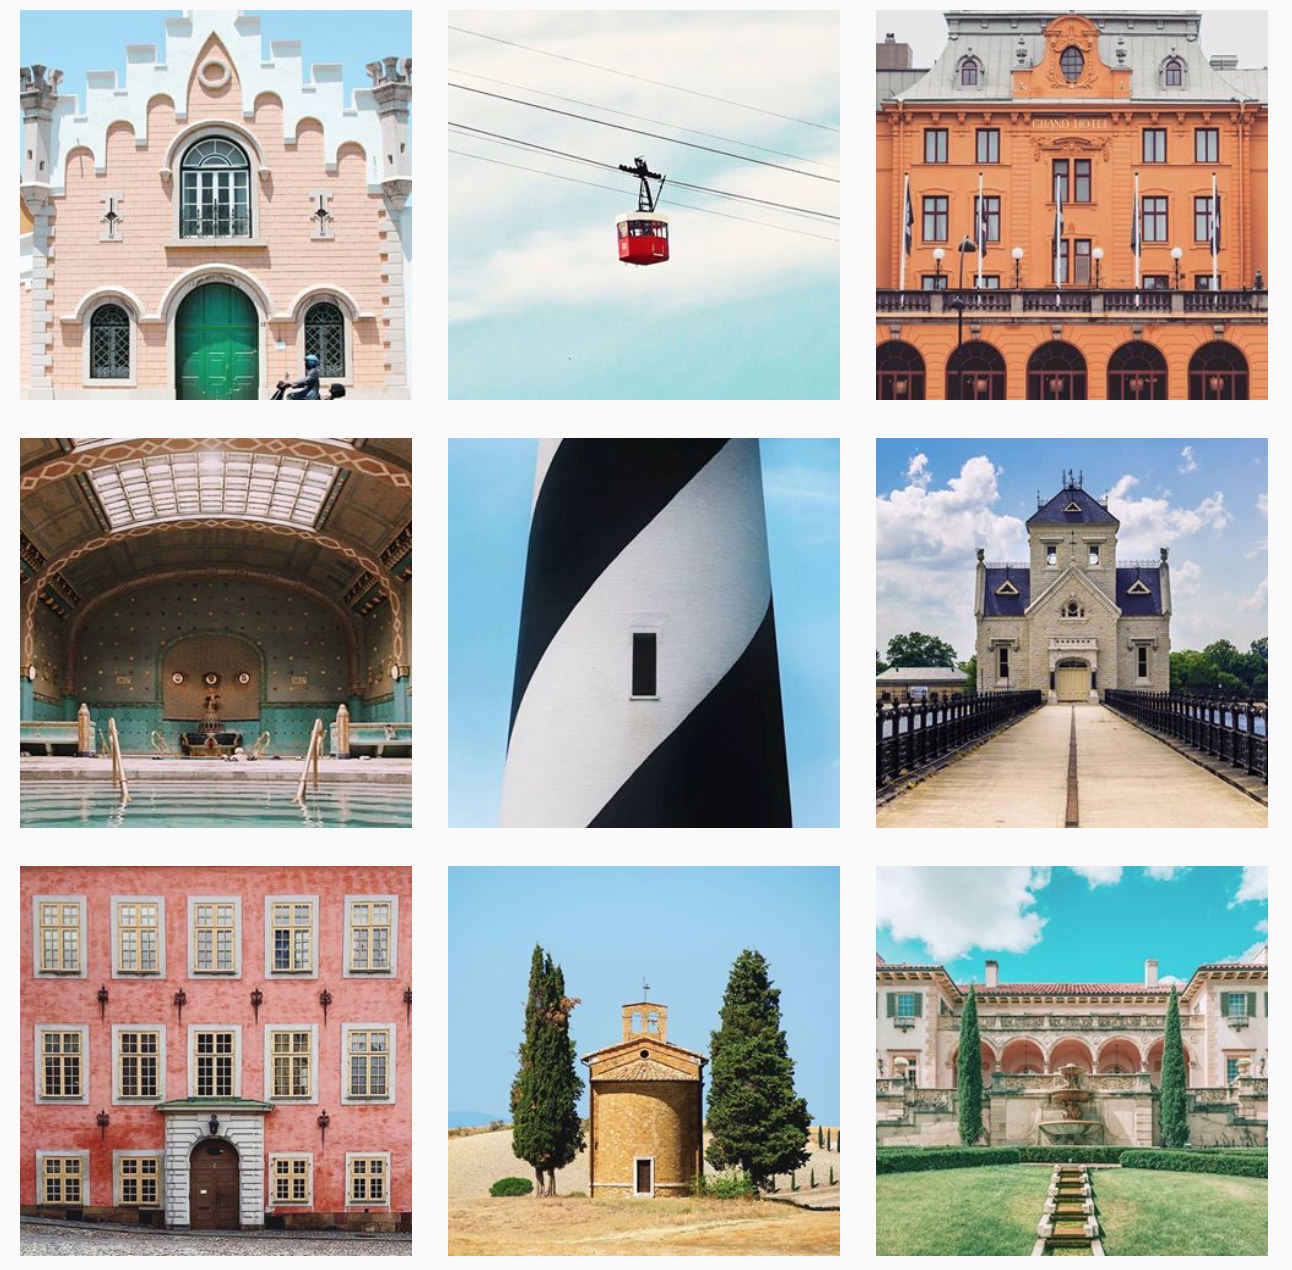 Blog-Mode-And-The-City-Lifestyle-Cinq-Petites-Choses-230-compte-Instagram-Accidentally-Wes-Anderson